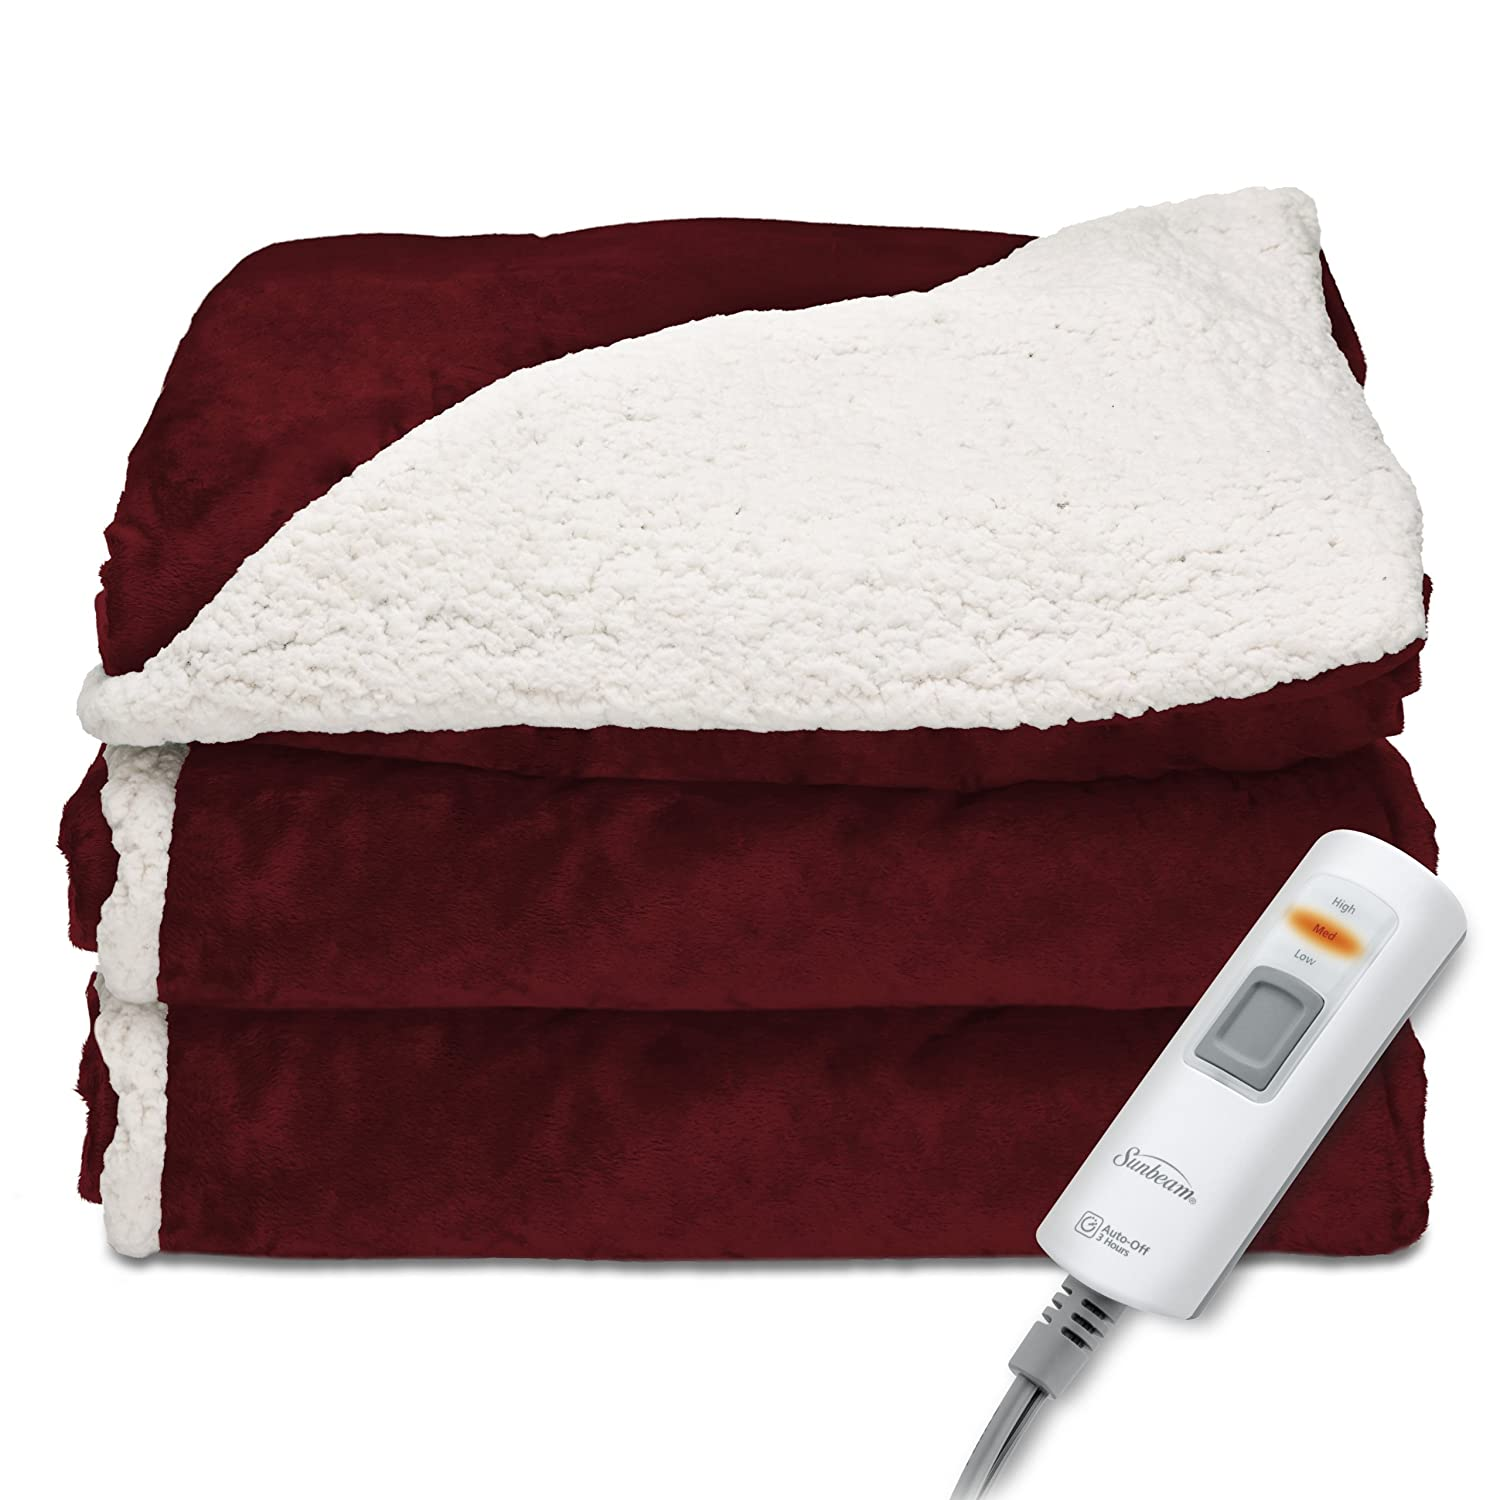 Sunbeam Heated Throw Blanket | Reversible Sherpa/Royal Mink, 3 Heat Settings, Garnet